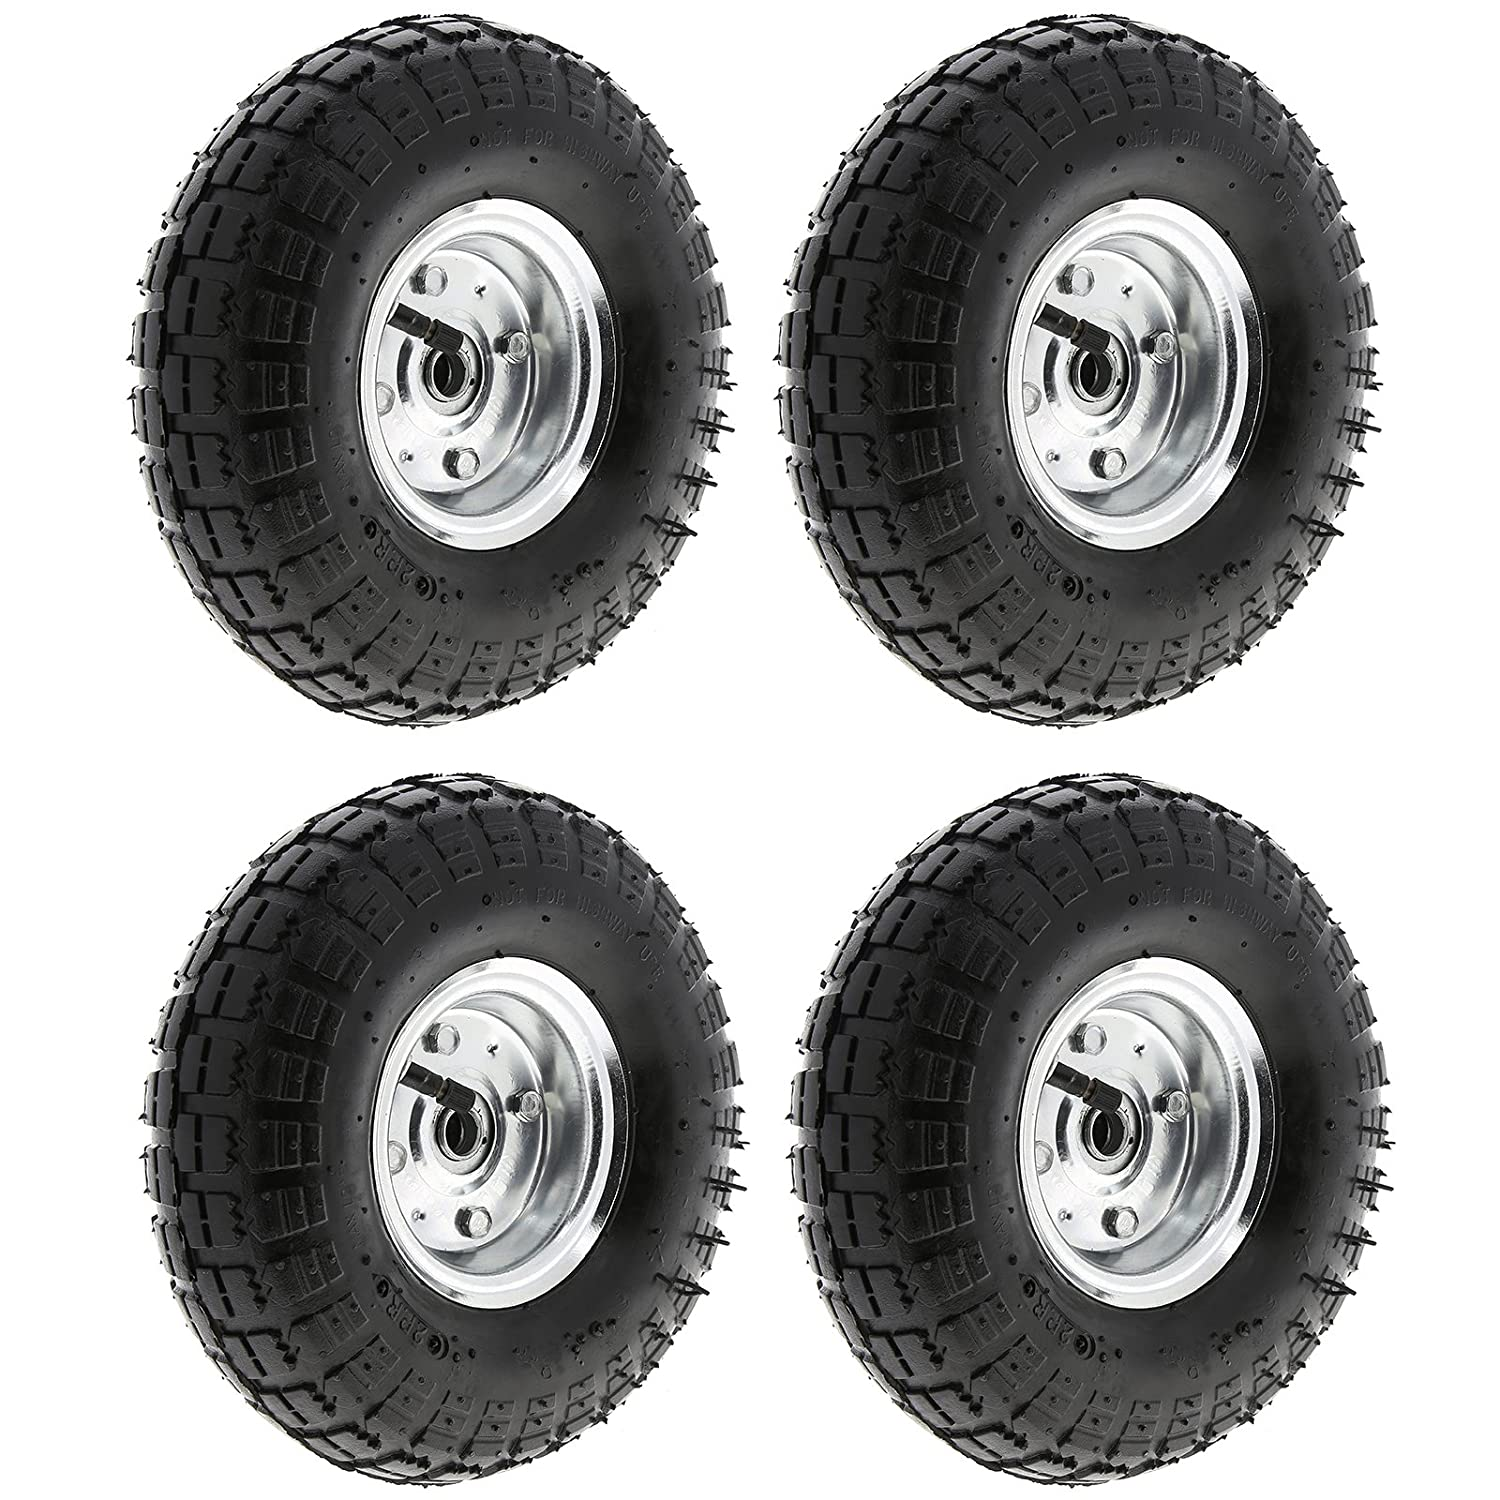 MasterPart Pneumatic 10' Sack Truck Wheelbarrow Tyres Trolley Wheel Cart Tyre Wheels - 4 Pack